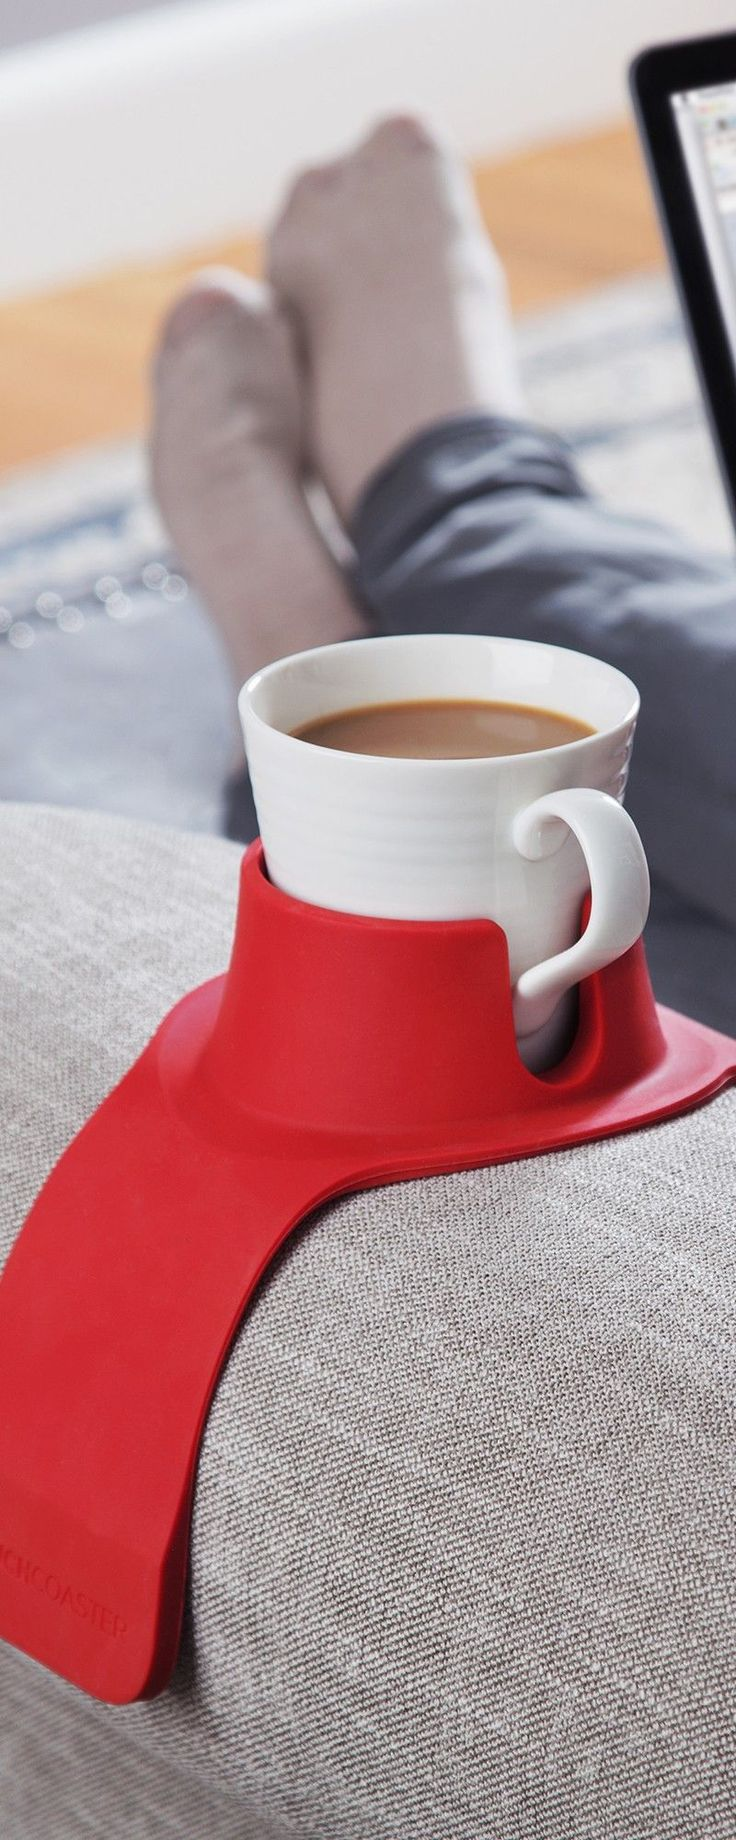 Keep your drinks close by—and secure. Drape this holder's adaptable, weighted sides over a couch or armchair, then settle in and relax.